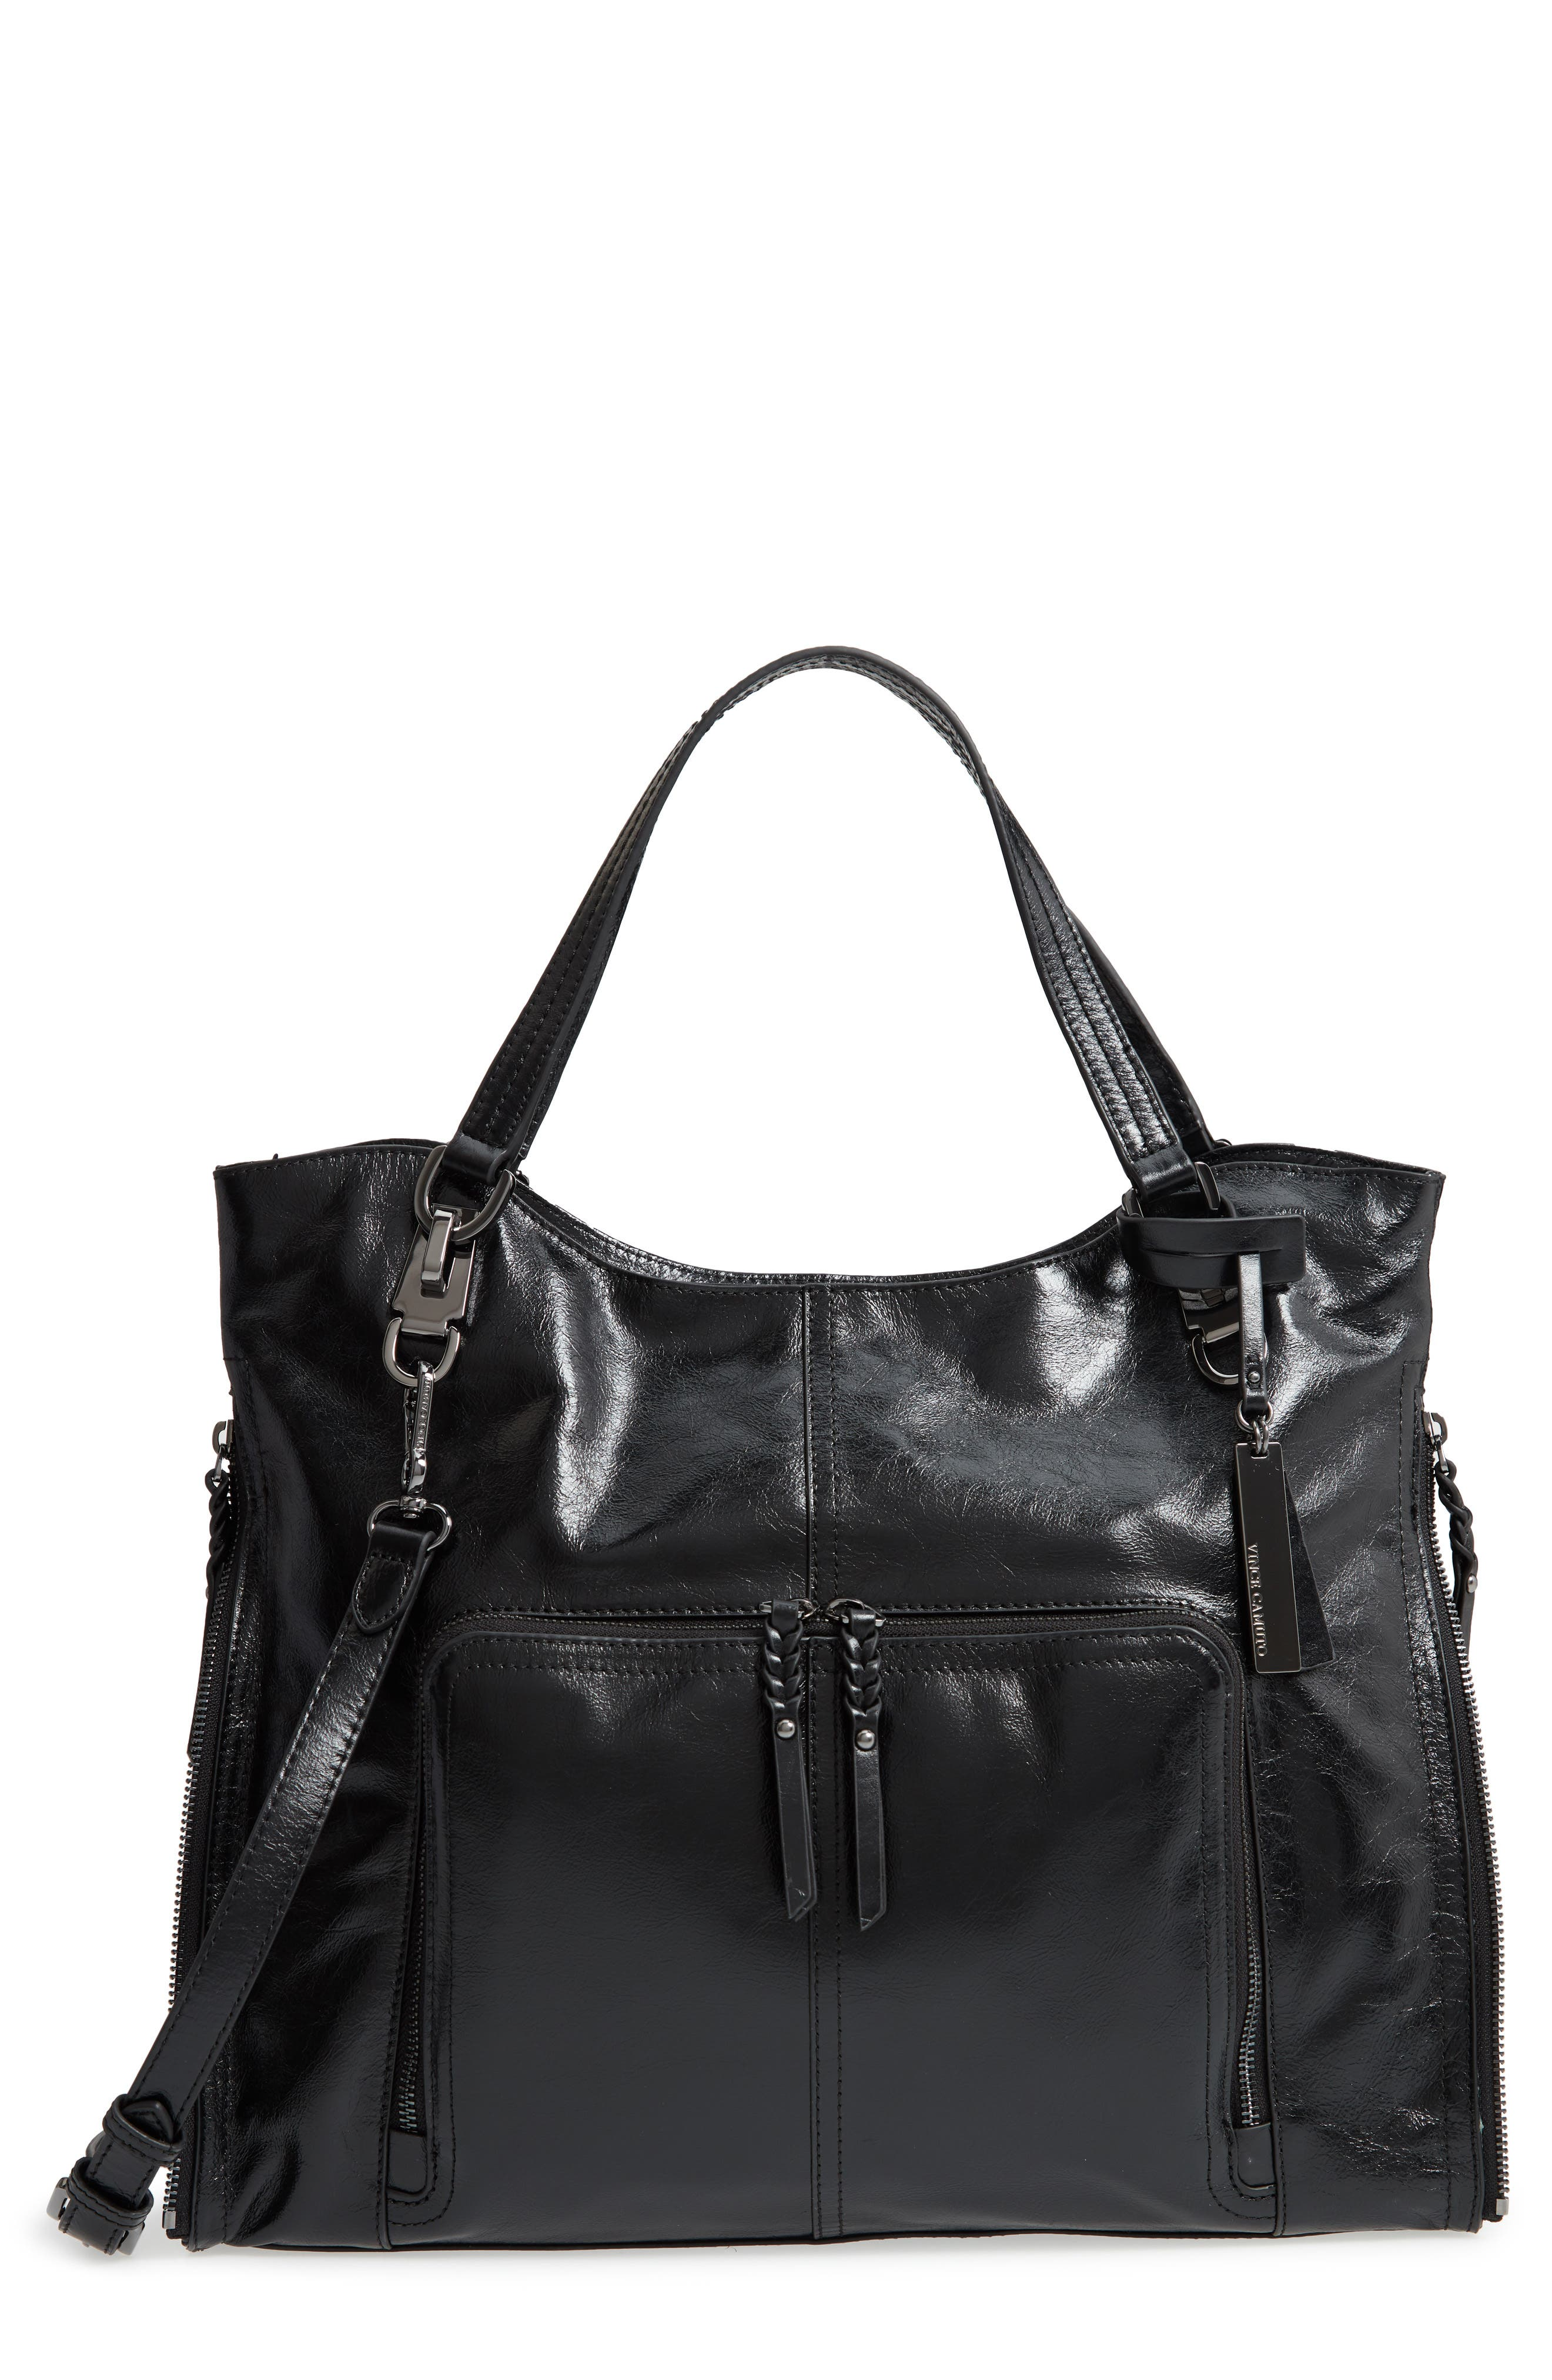 VINCE CAMUTO,                             Narra Leather Tote,                             Main thumbnail 1, color,                             002